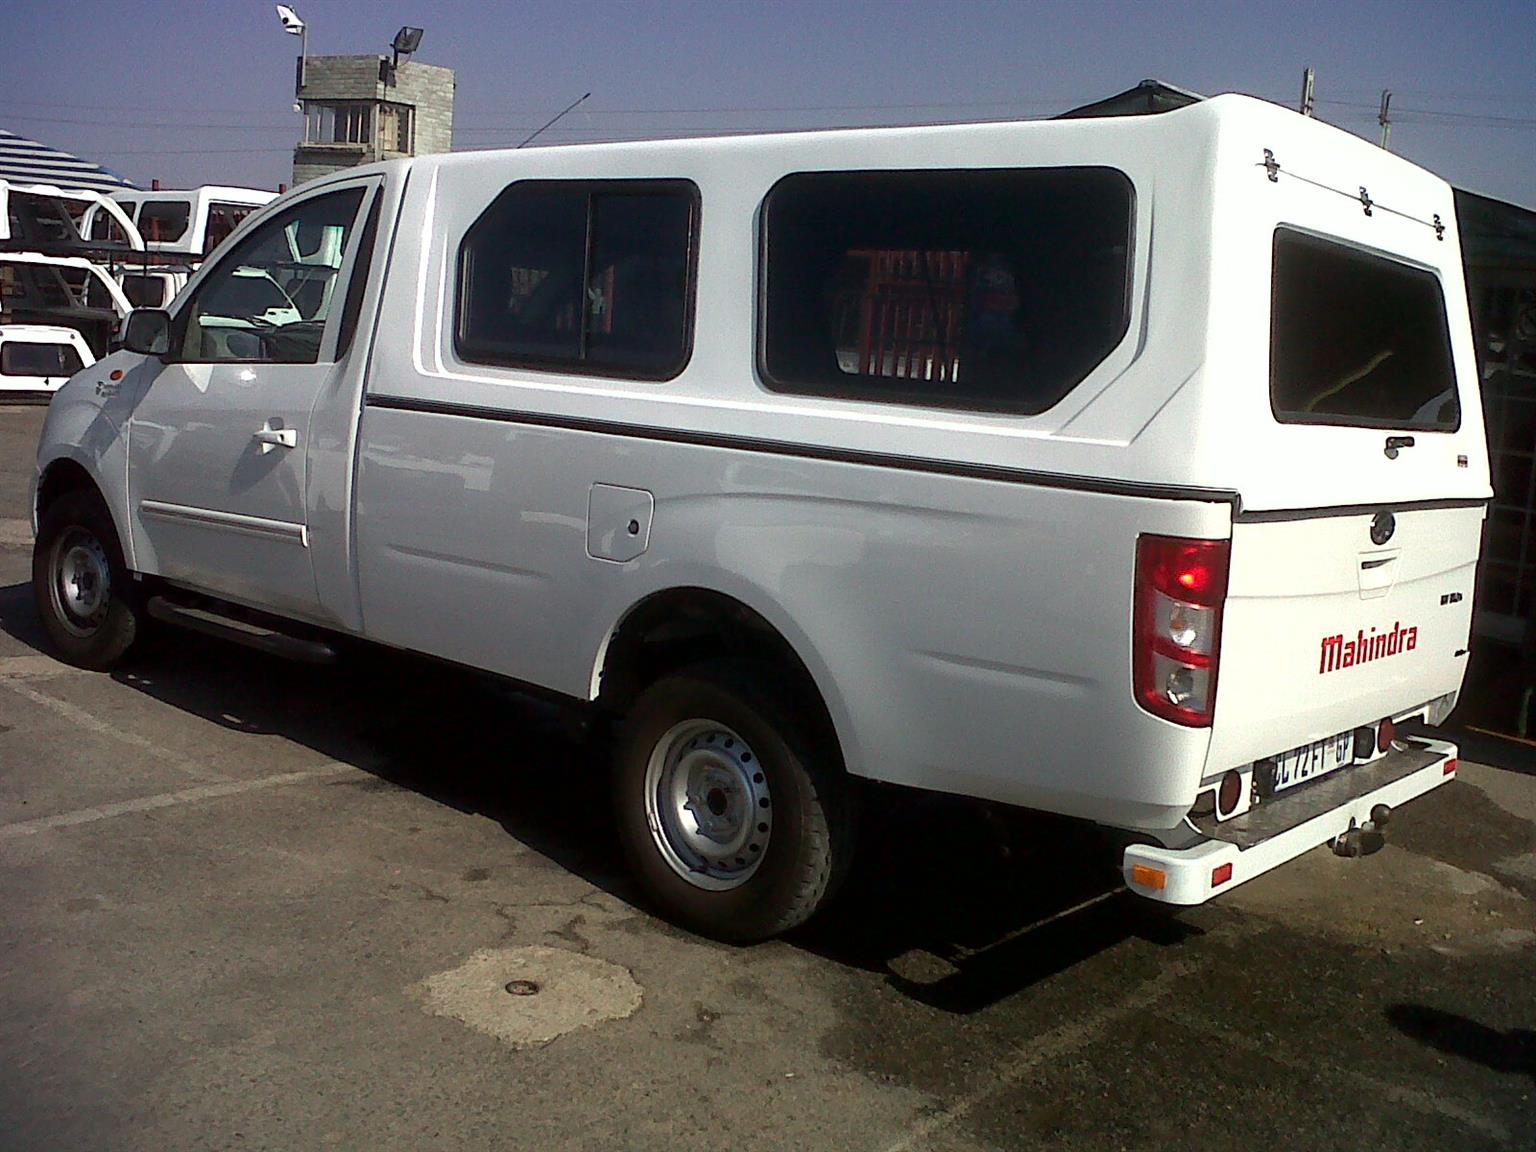 BRAND NEW GC MAHINDRA GENIO LWB SINGLE CAB BAKKIE CANOPY FOR SALE!!